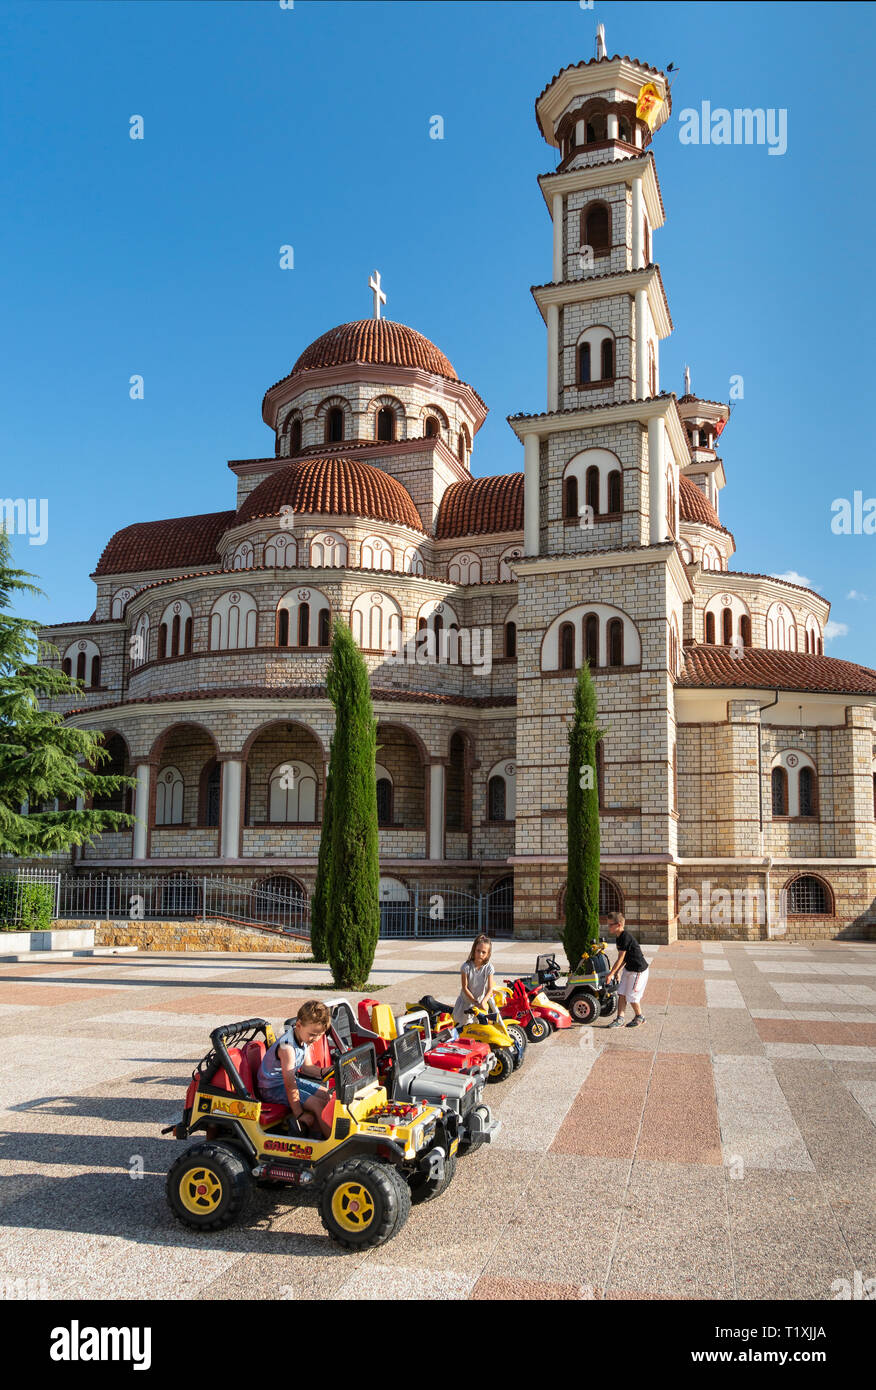 Children playing on miniature cars in front of Korca's Orthodox Cathedral, Korca, South eastern Albania. - Stock Image